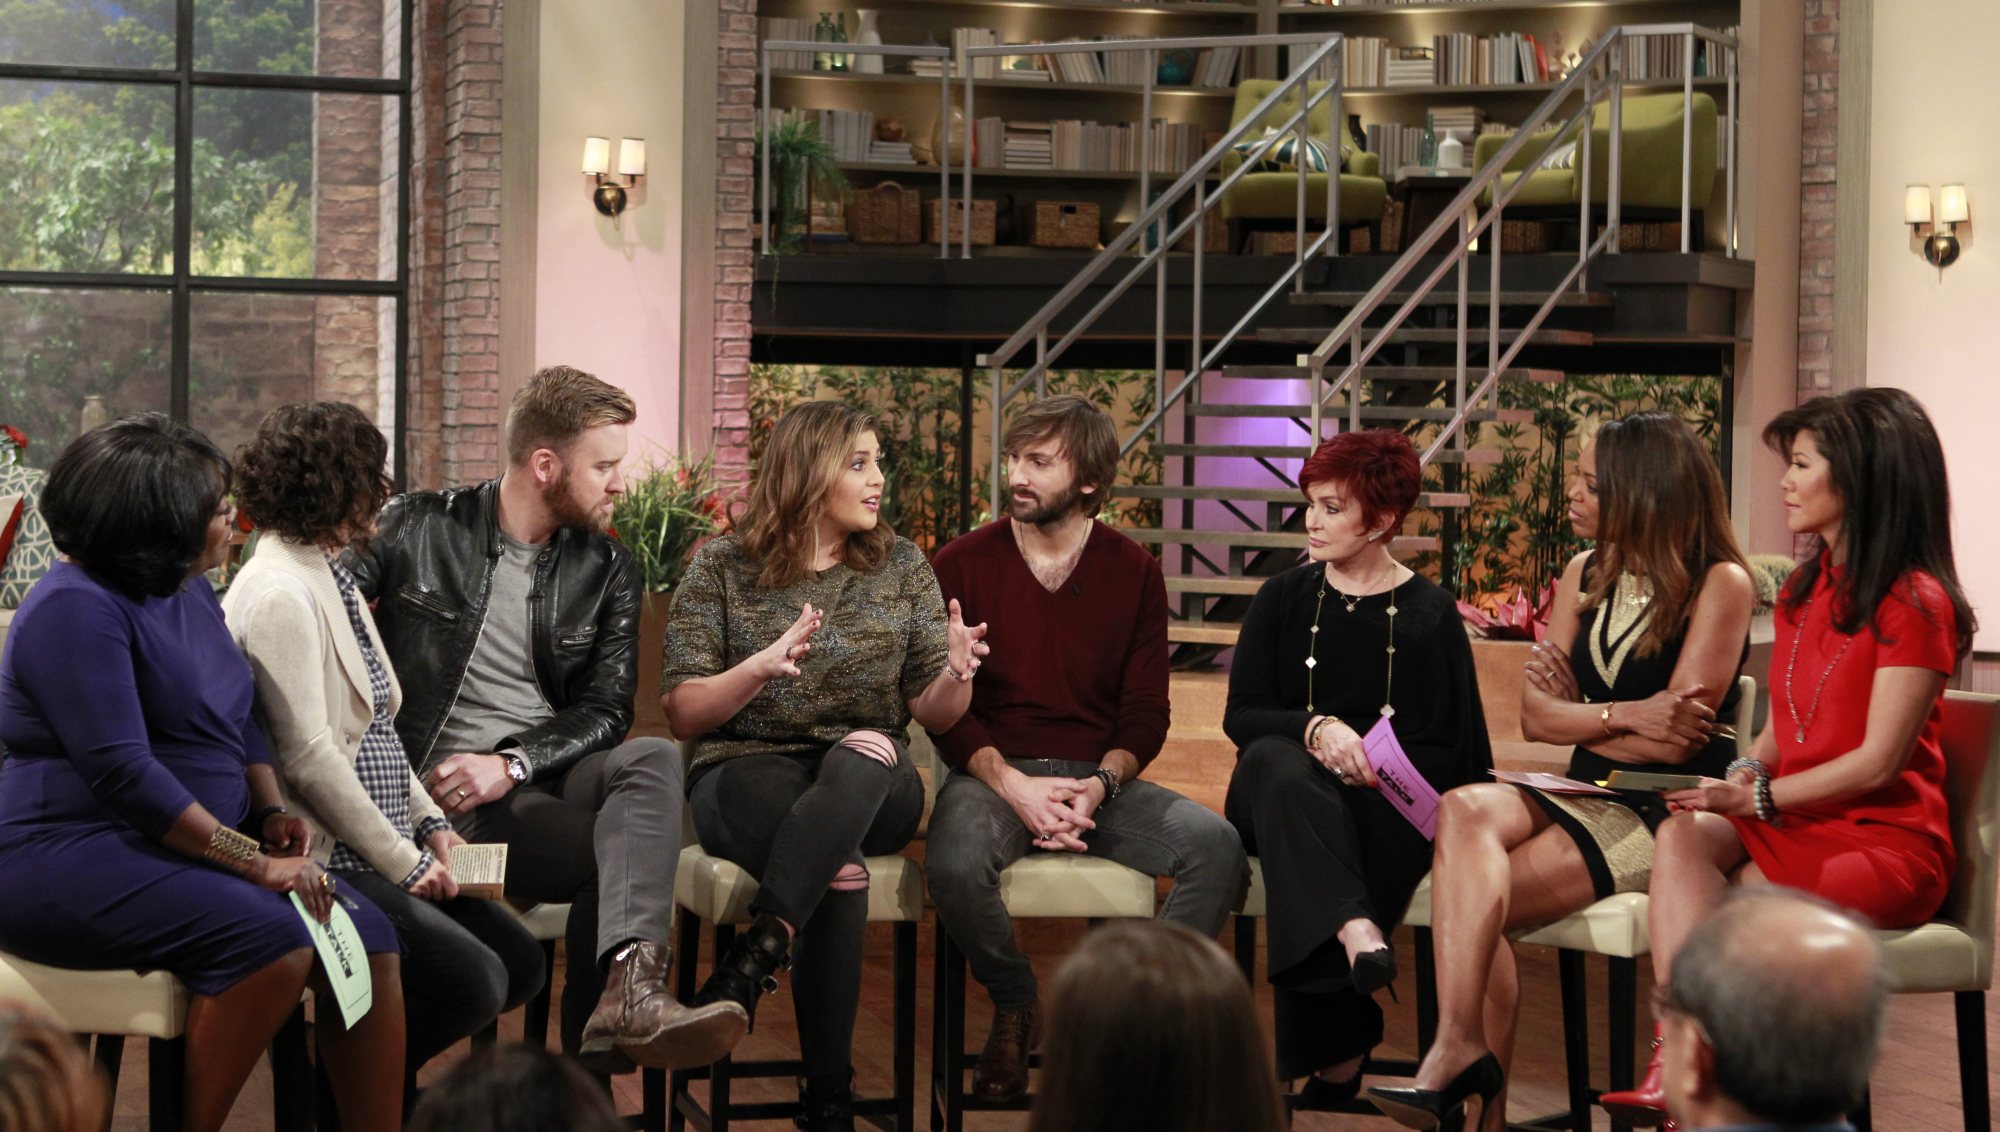 2. Lady Antebellum's surprised the ladies with a live performance.